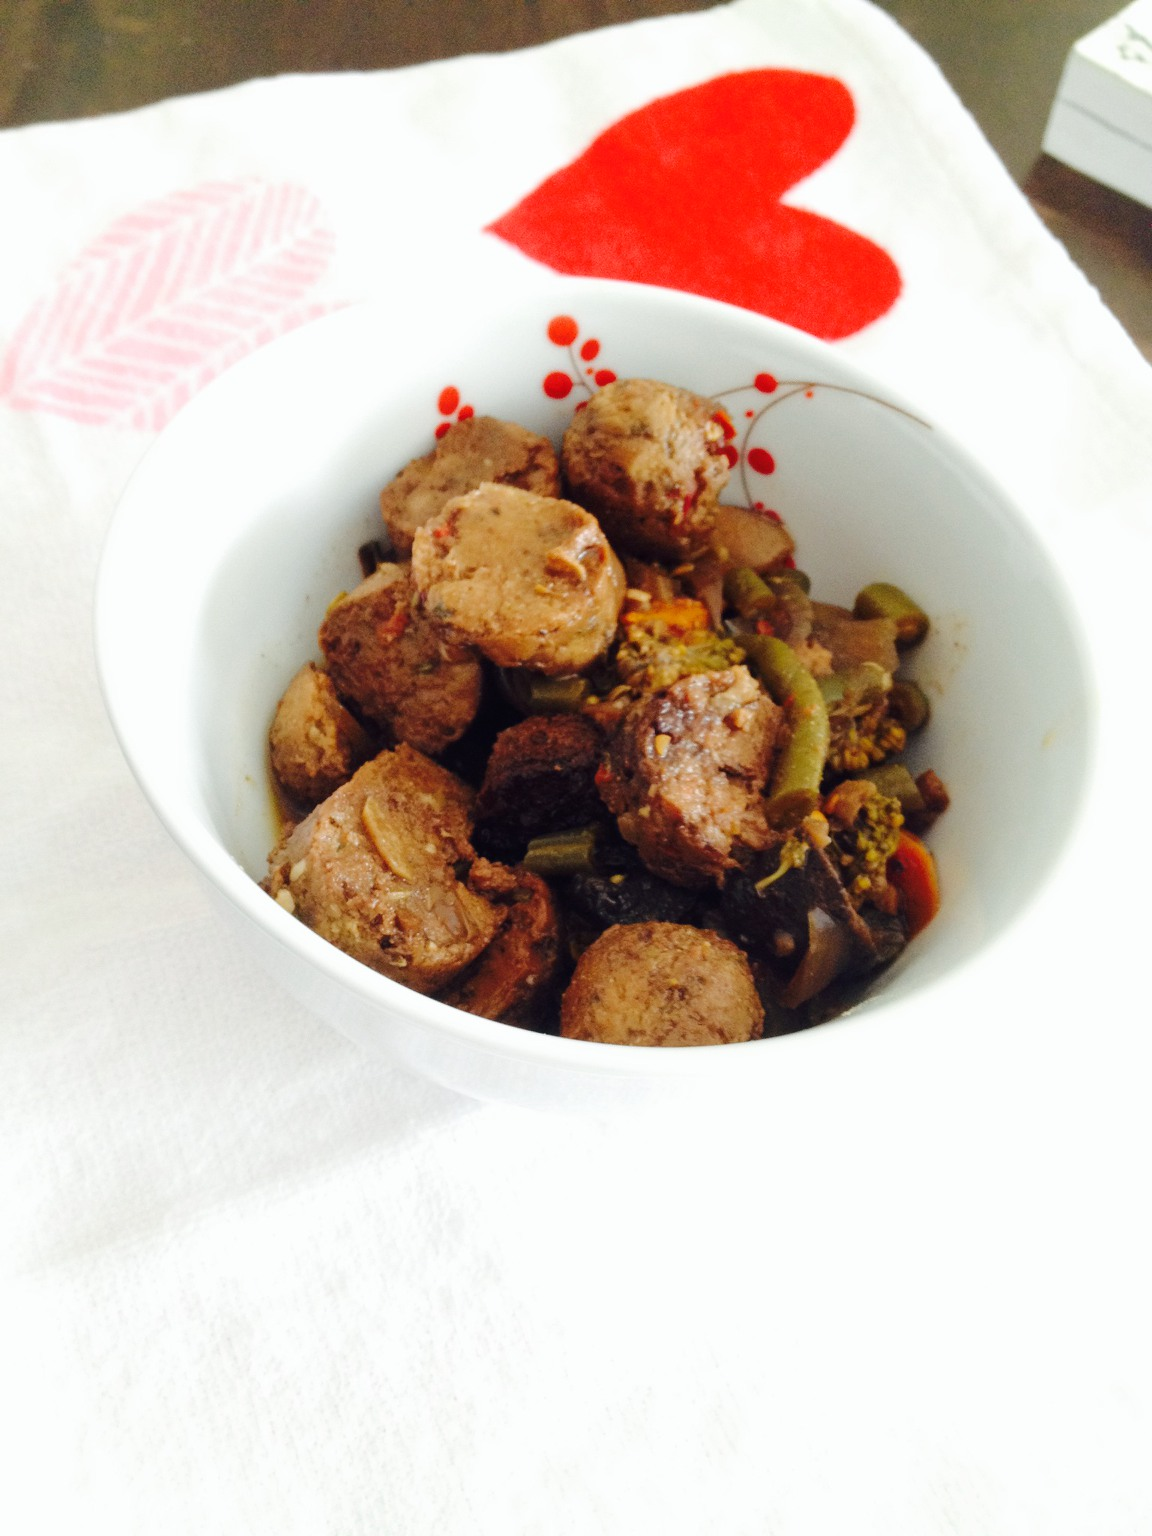 Recipe for Spicy Vegetarian Sausage And Vegetables : Slow Cooker (Crock-Pot)